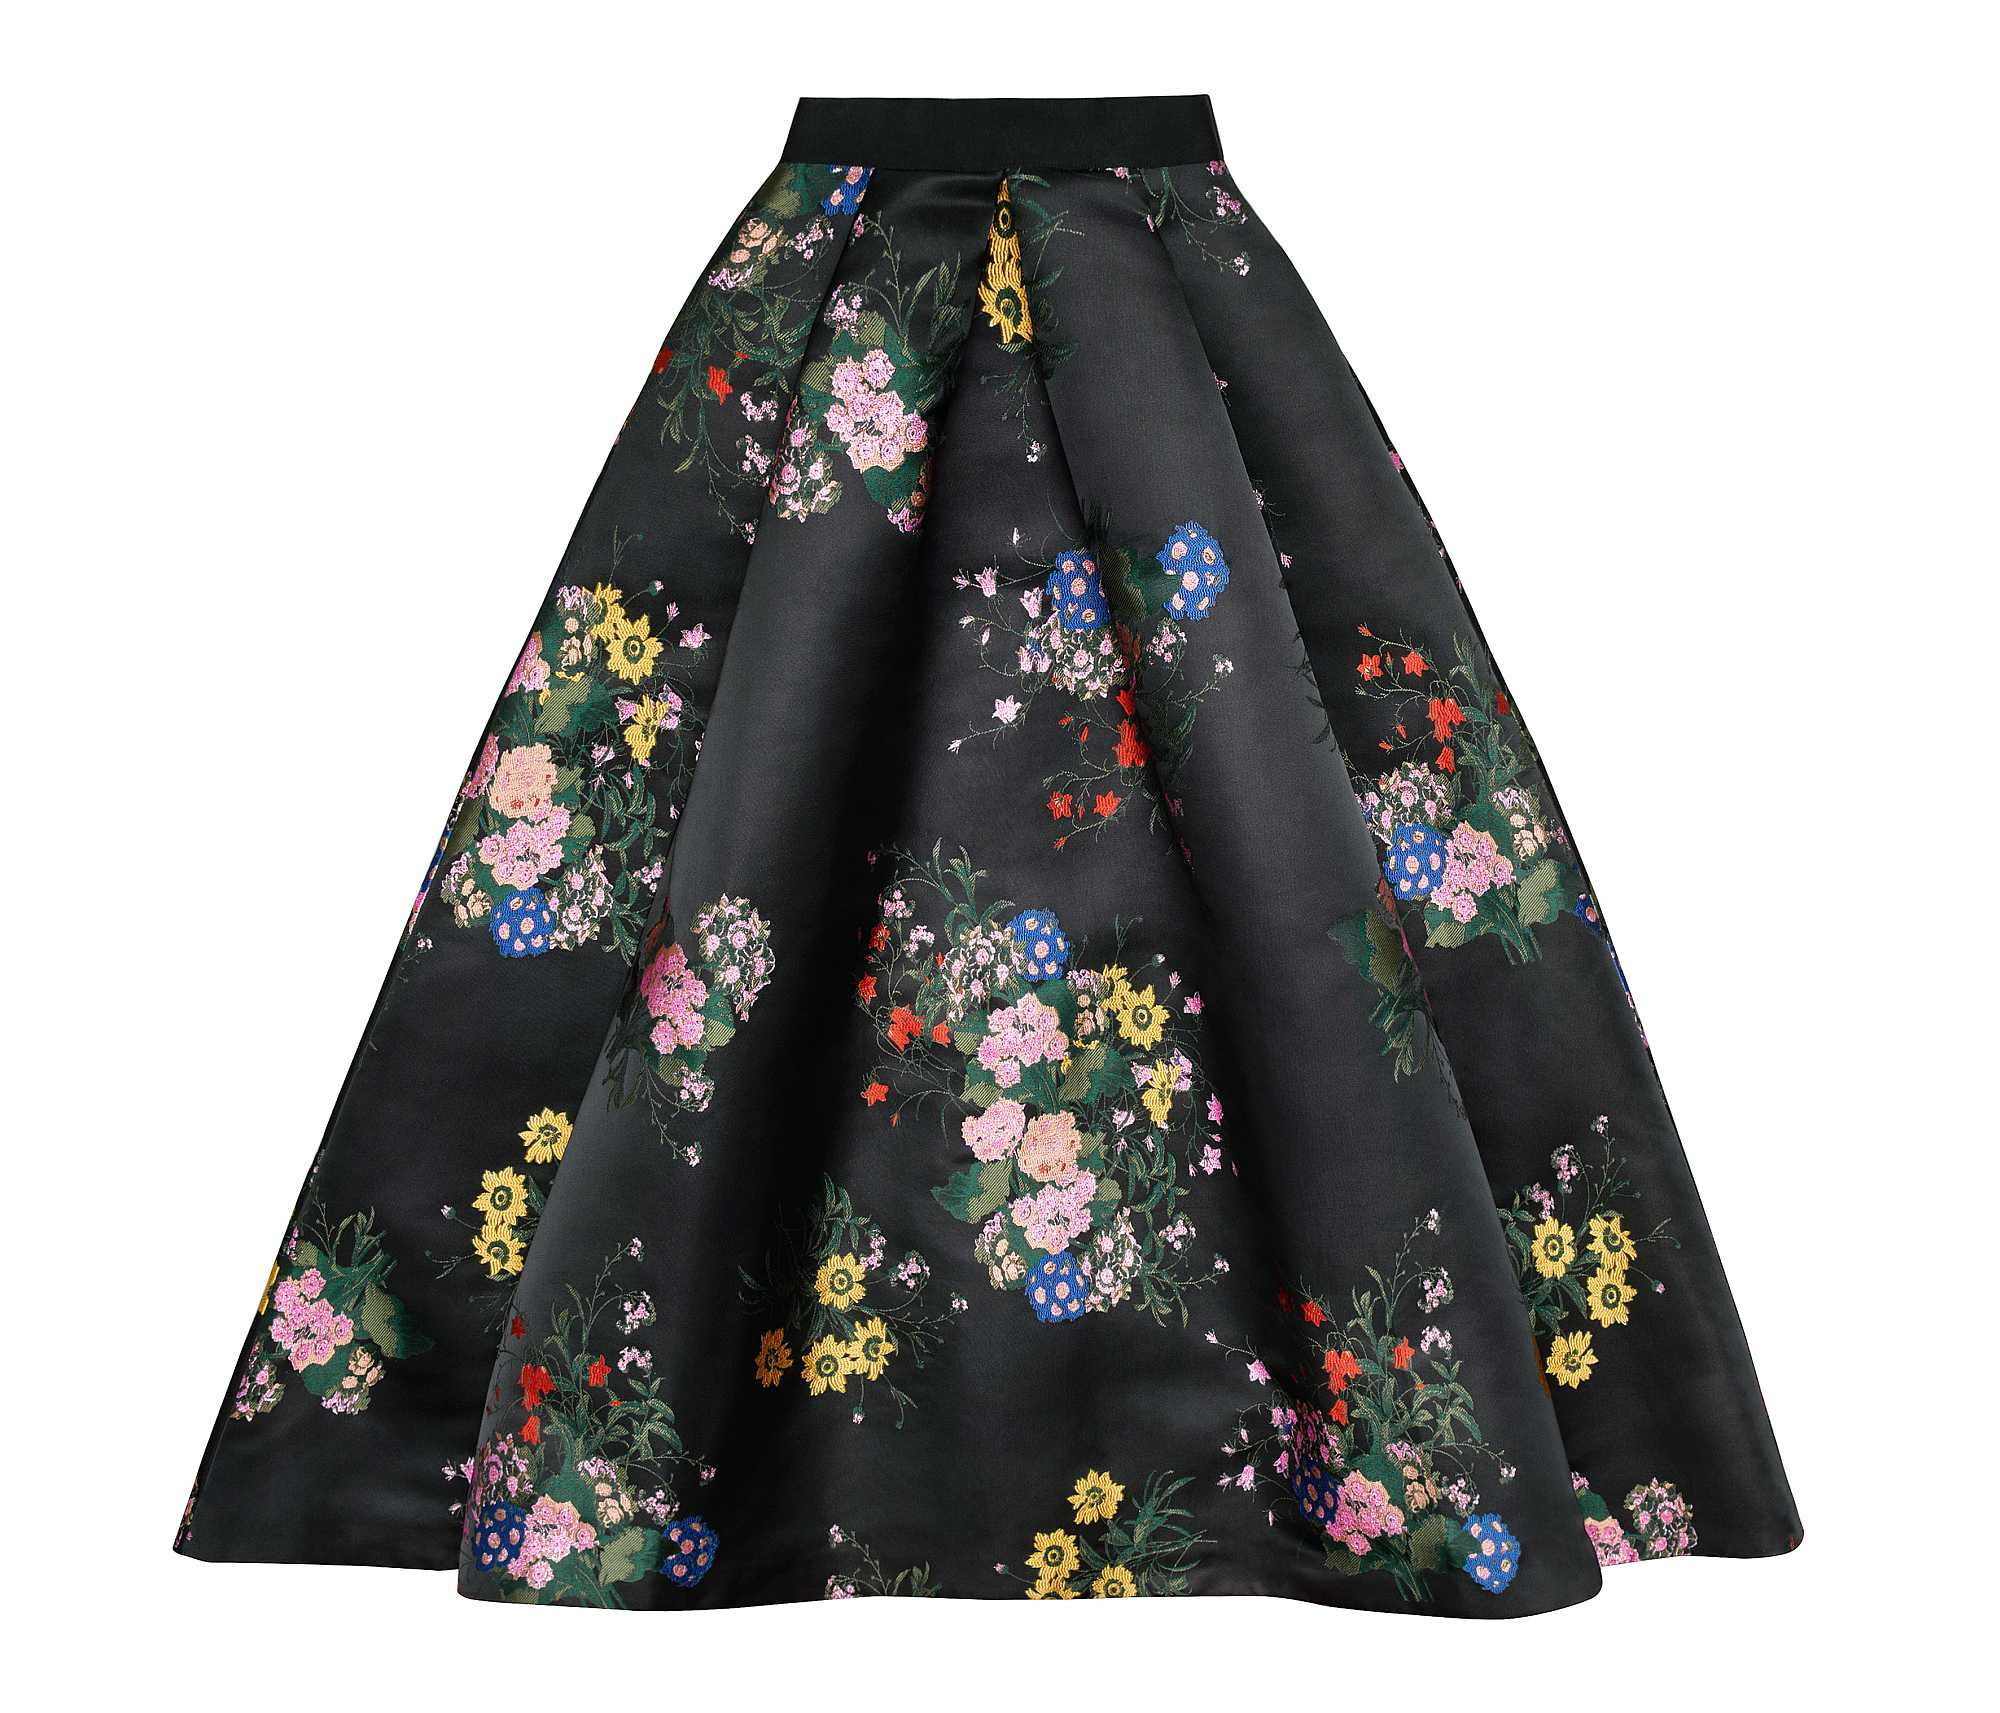 H&M x Erdem Black floral full skirt